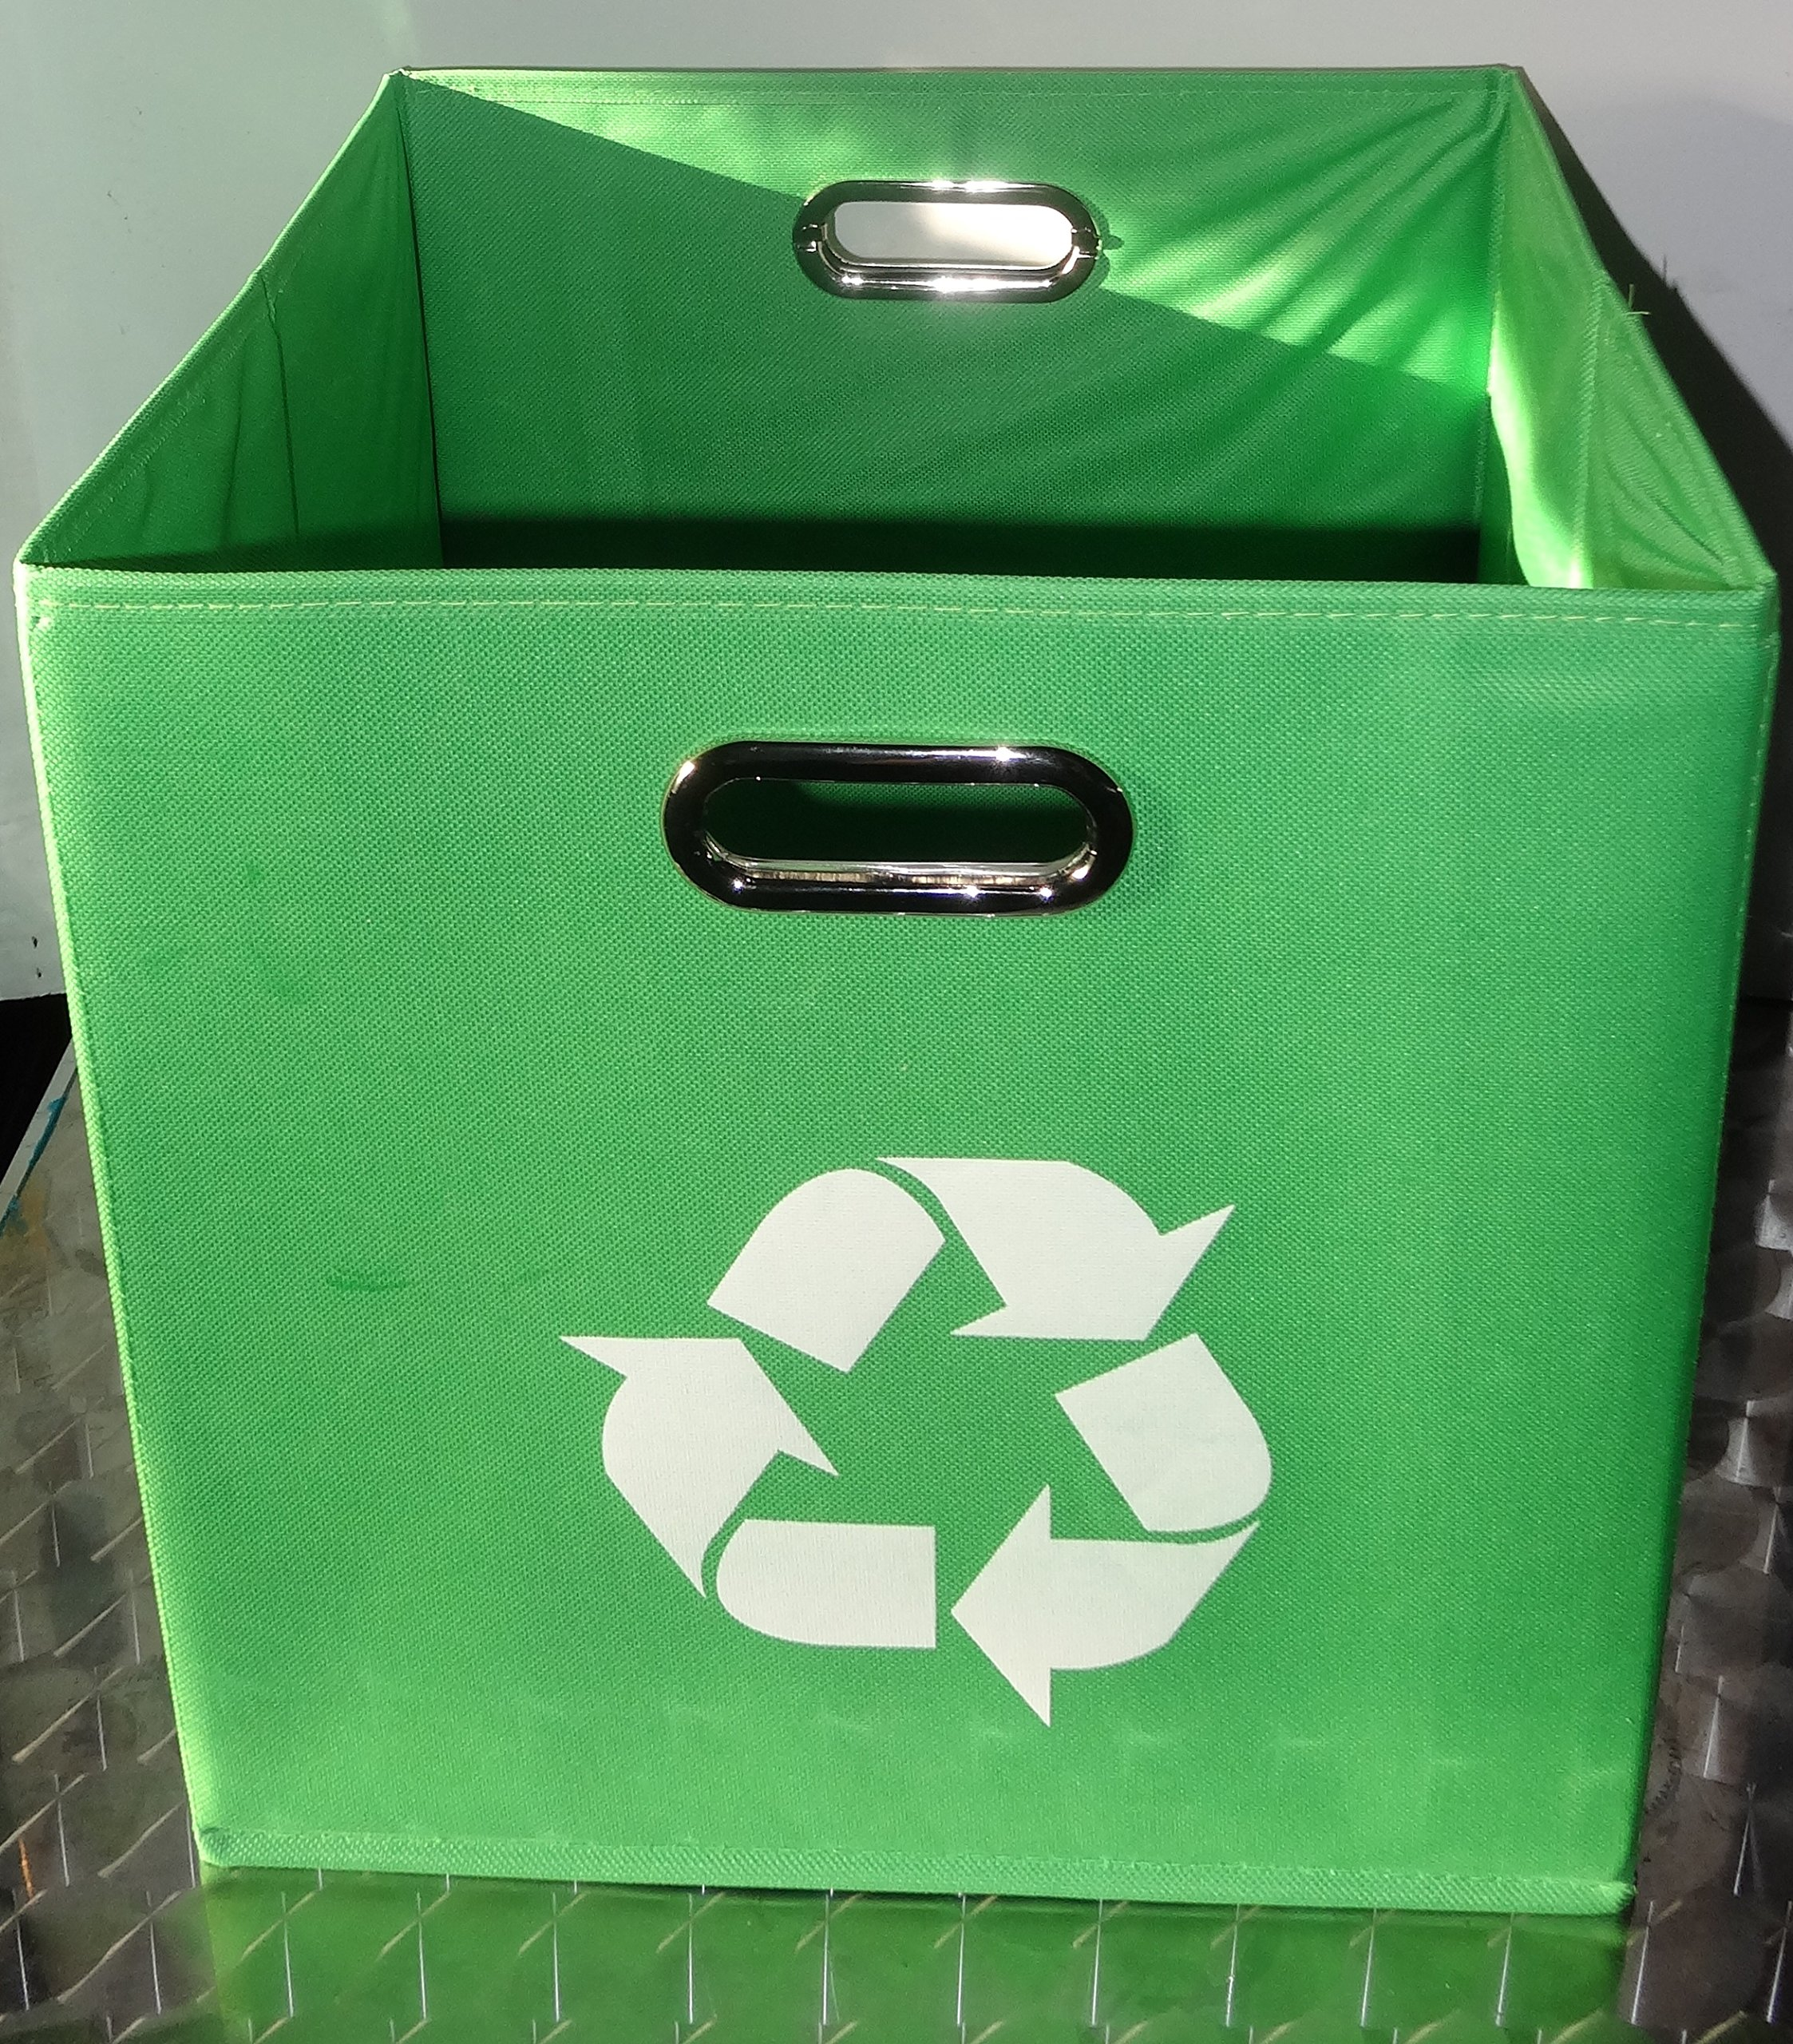 Alexi Ricci Green Folding Designer Recycle Bin 13x13 x 13 inch by ideal for recycling of Newspapers - Magazines office papers Great for Office- Under Kitchen Sink - Dorm Room - Under Desk-